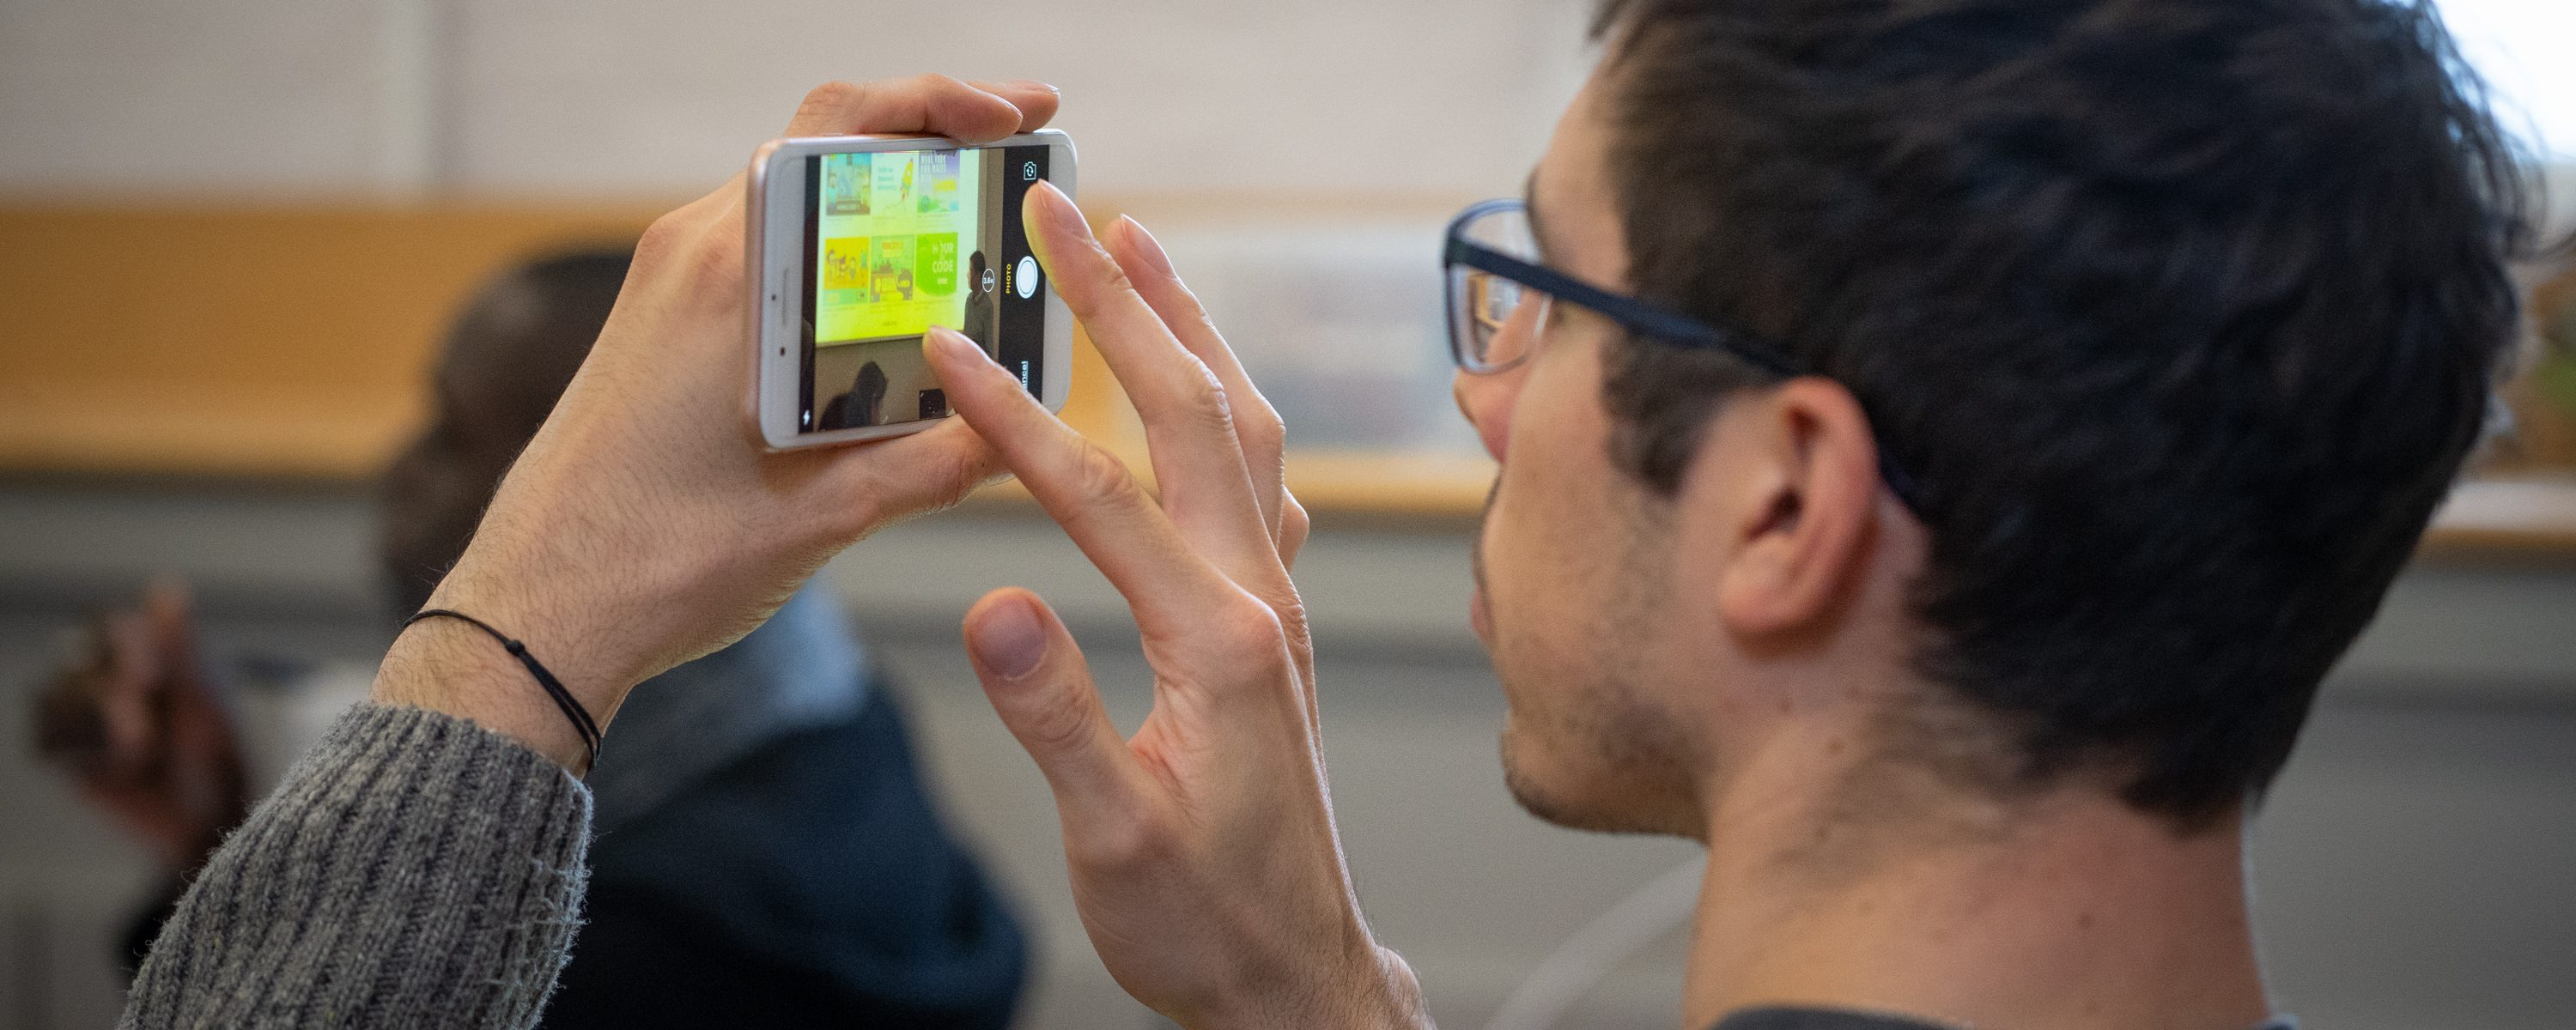 Film making with mobile devices, a short course for educators